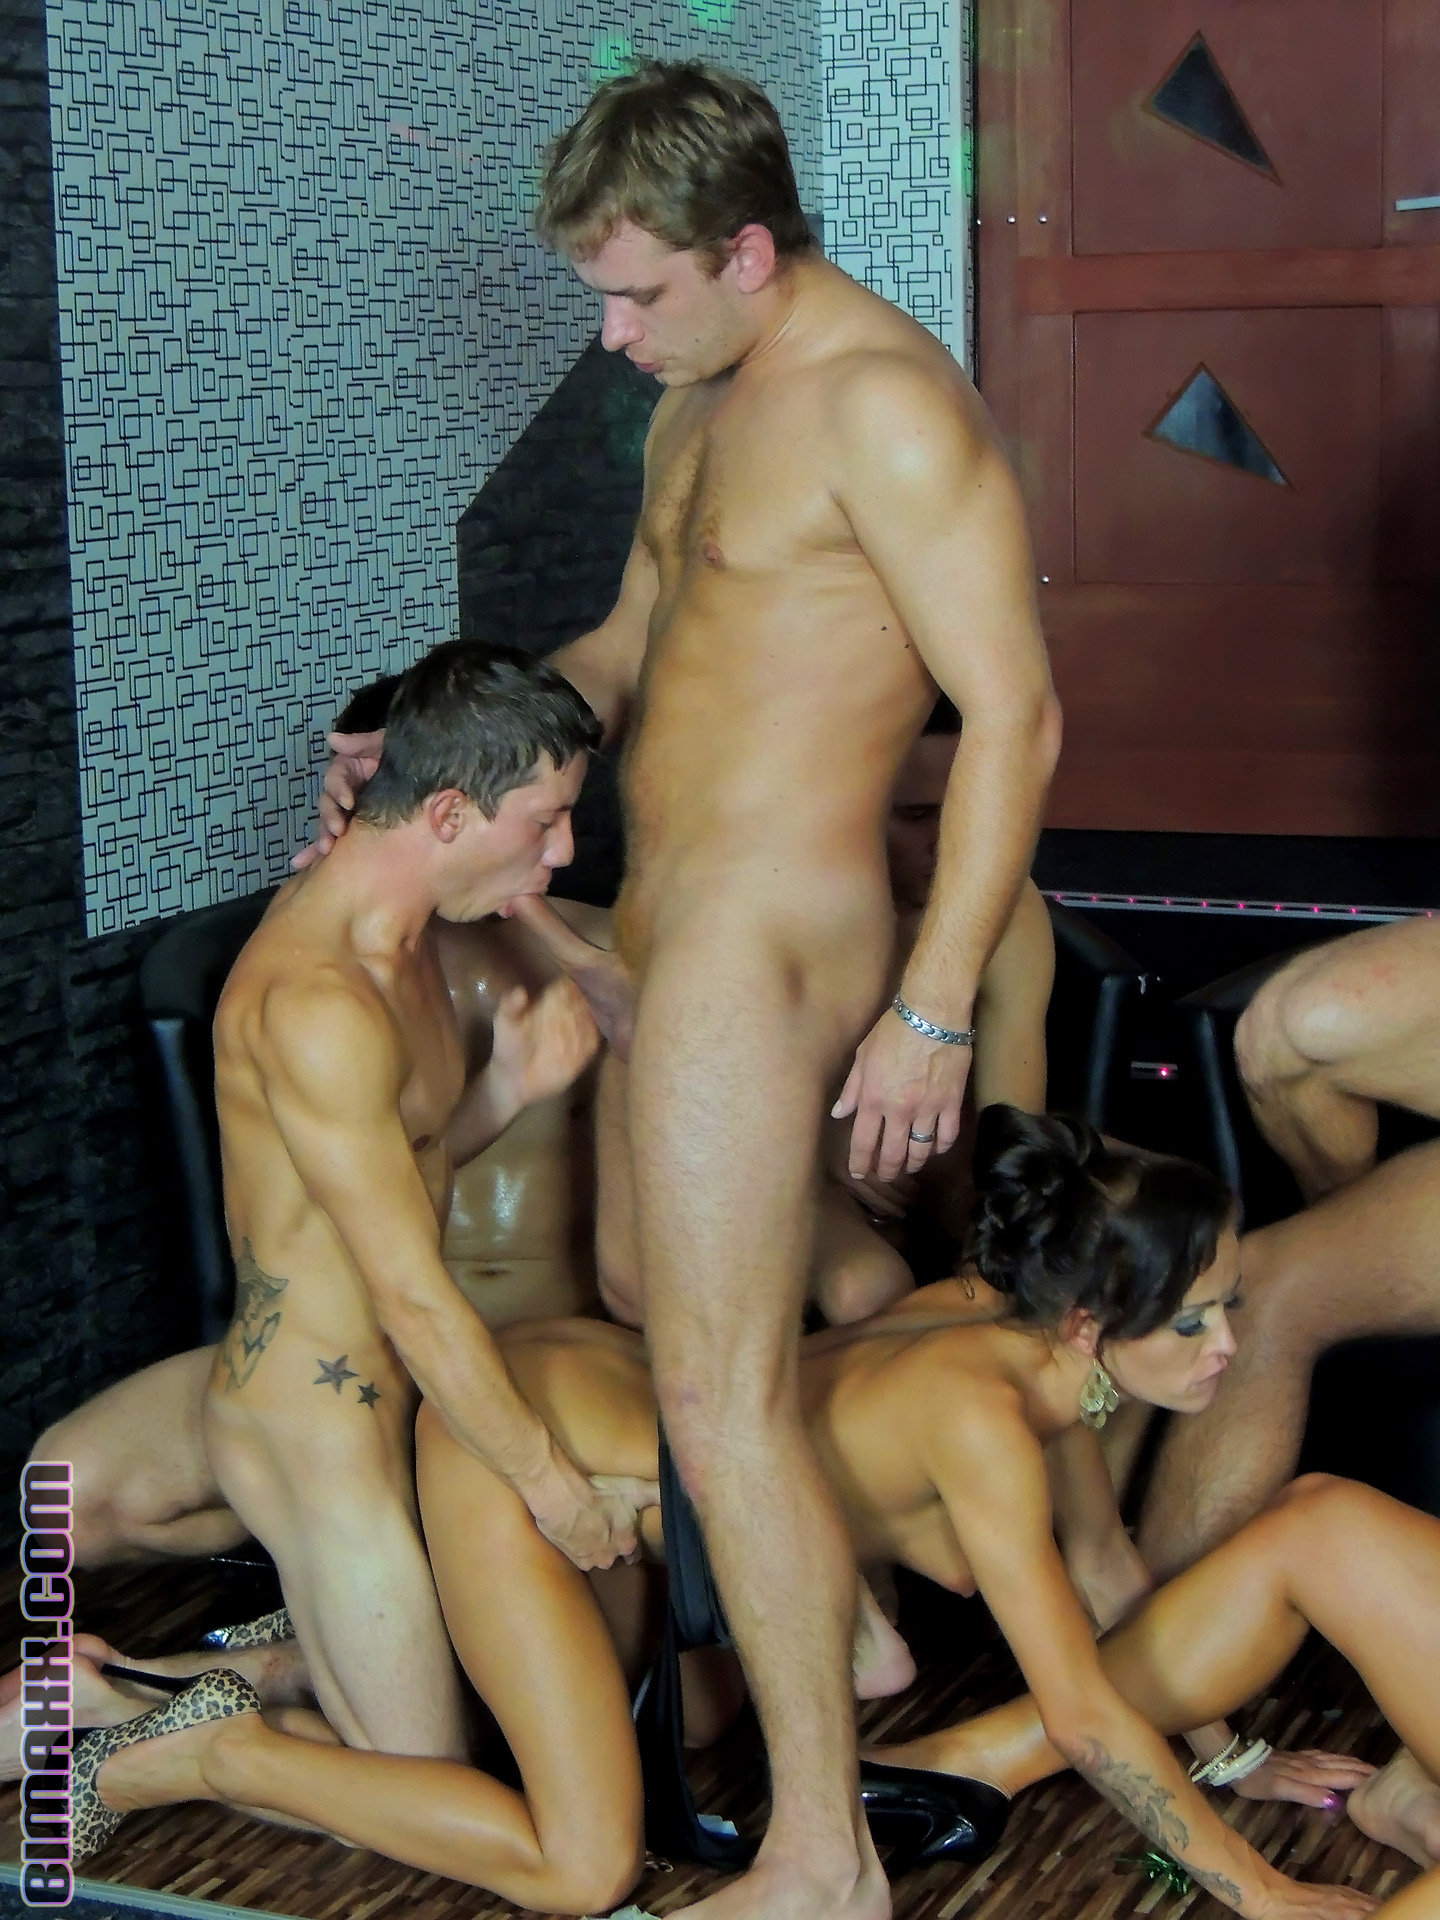 from Yahya hot gay sexy men porn men